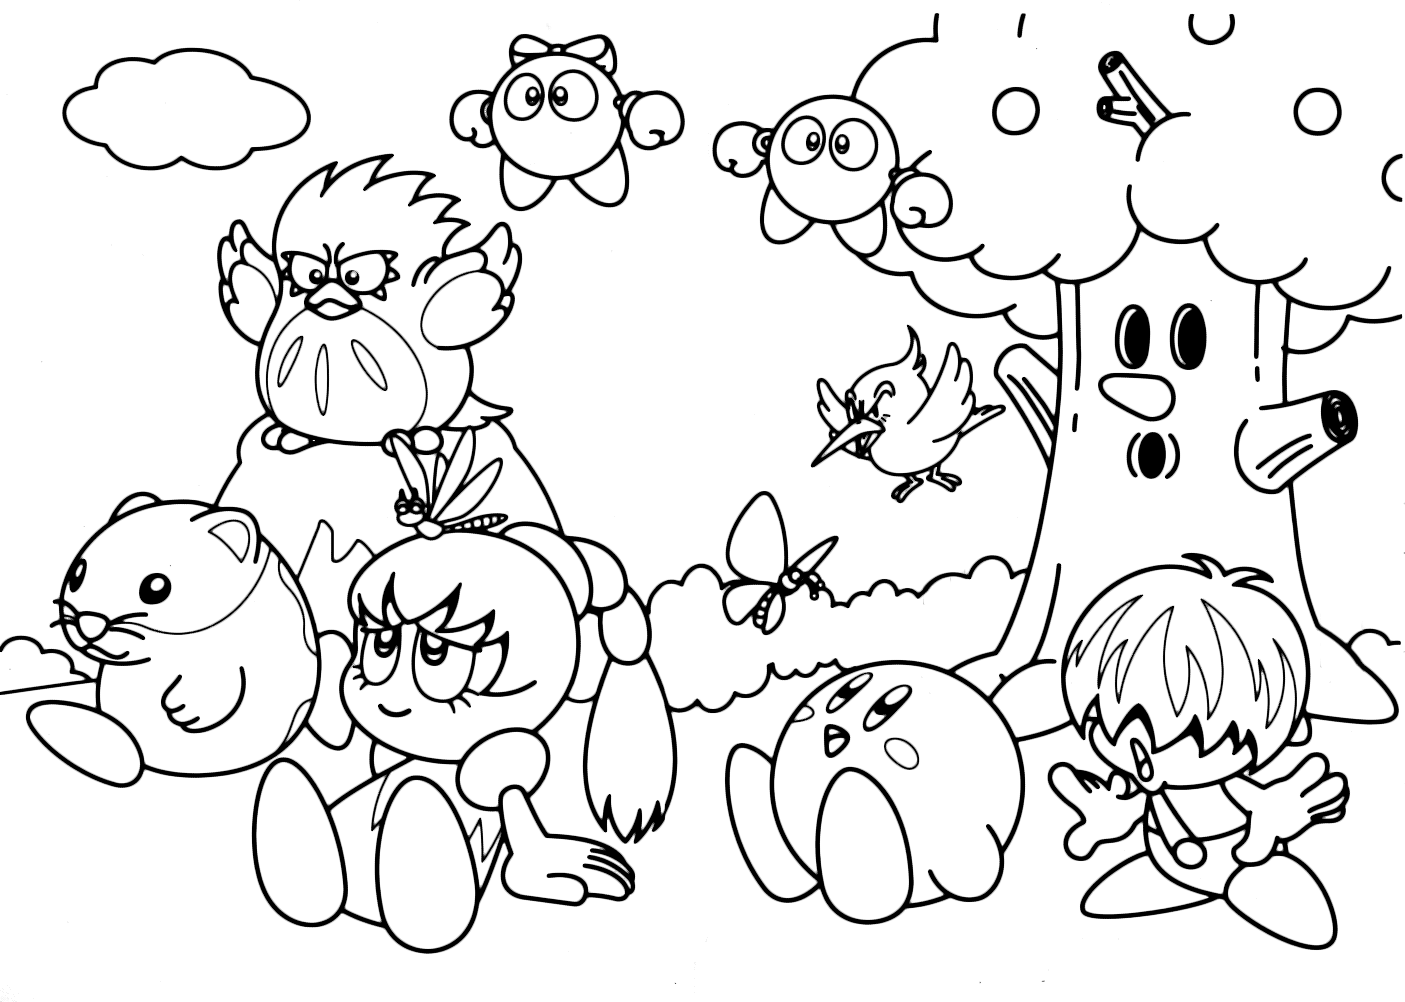 Kirby's Coloring Pages